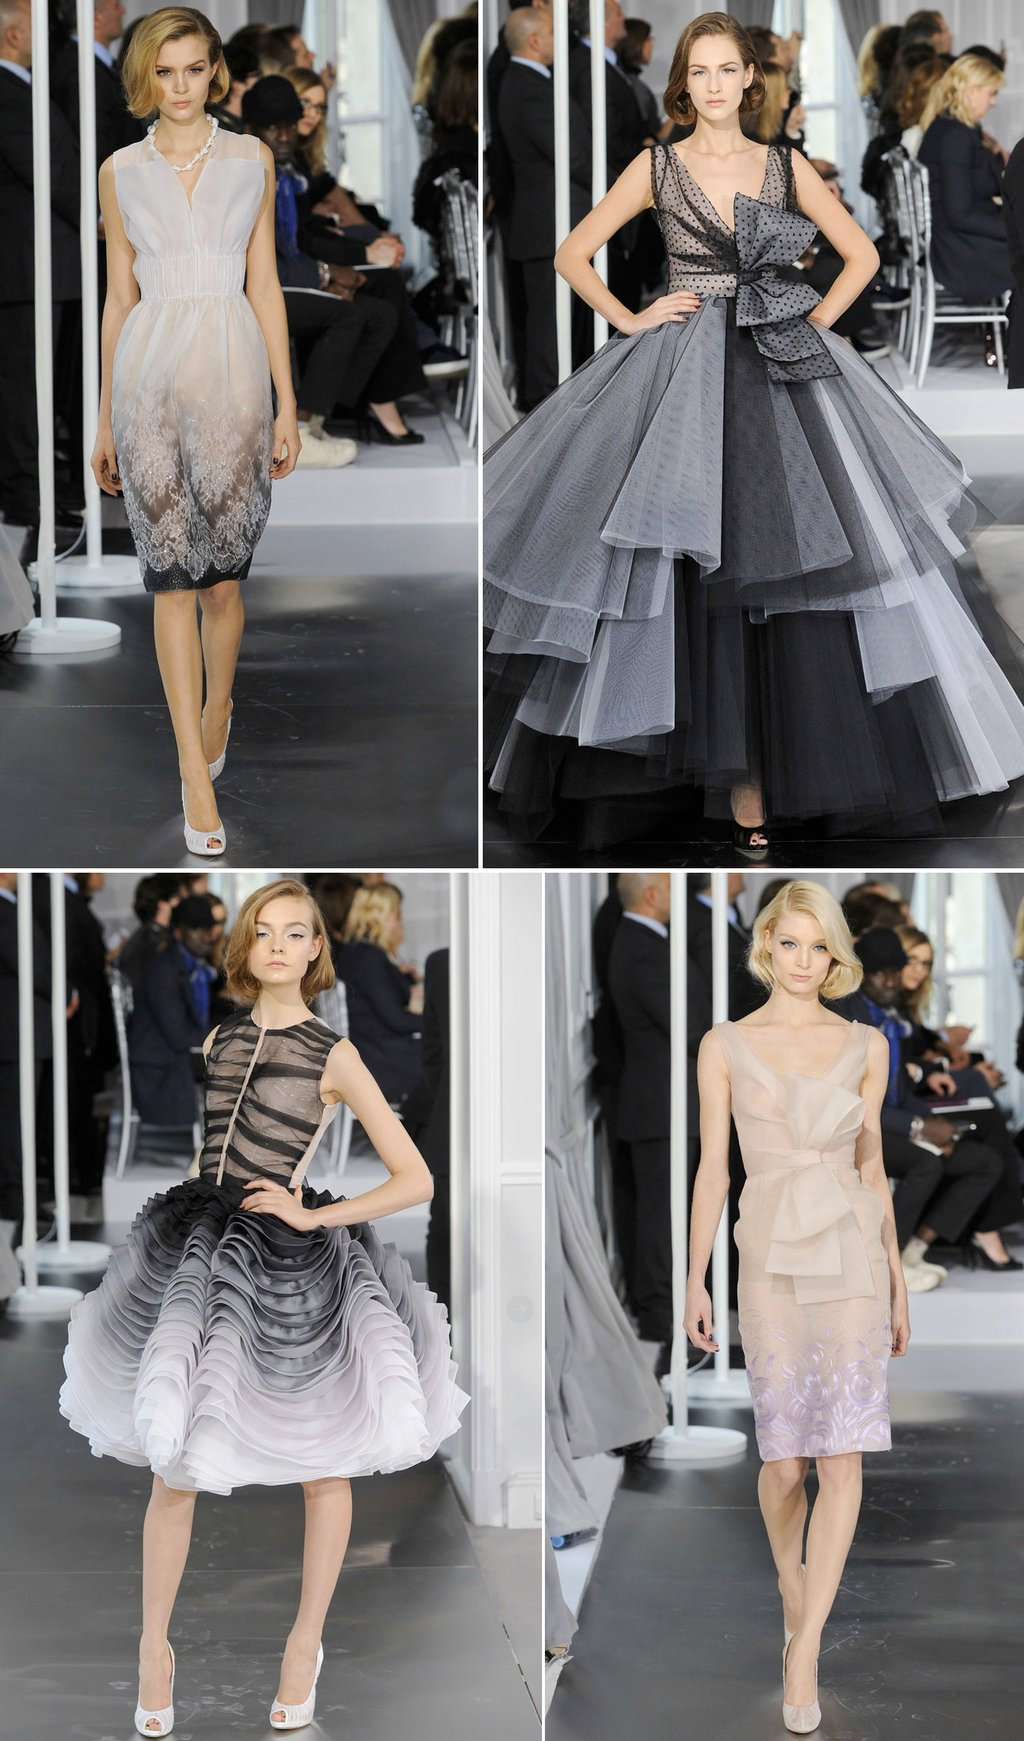 Christian-dior-couture-spring-2012-wedding-dress-ideas.full